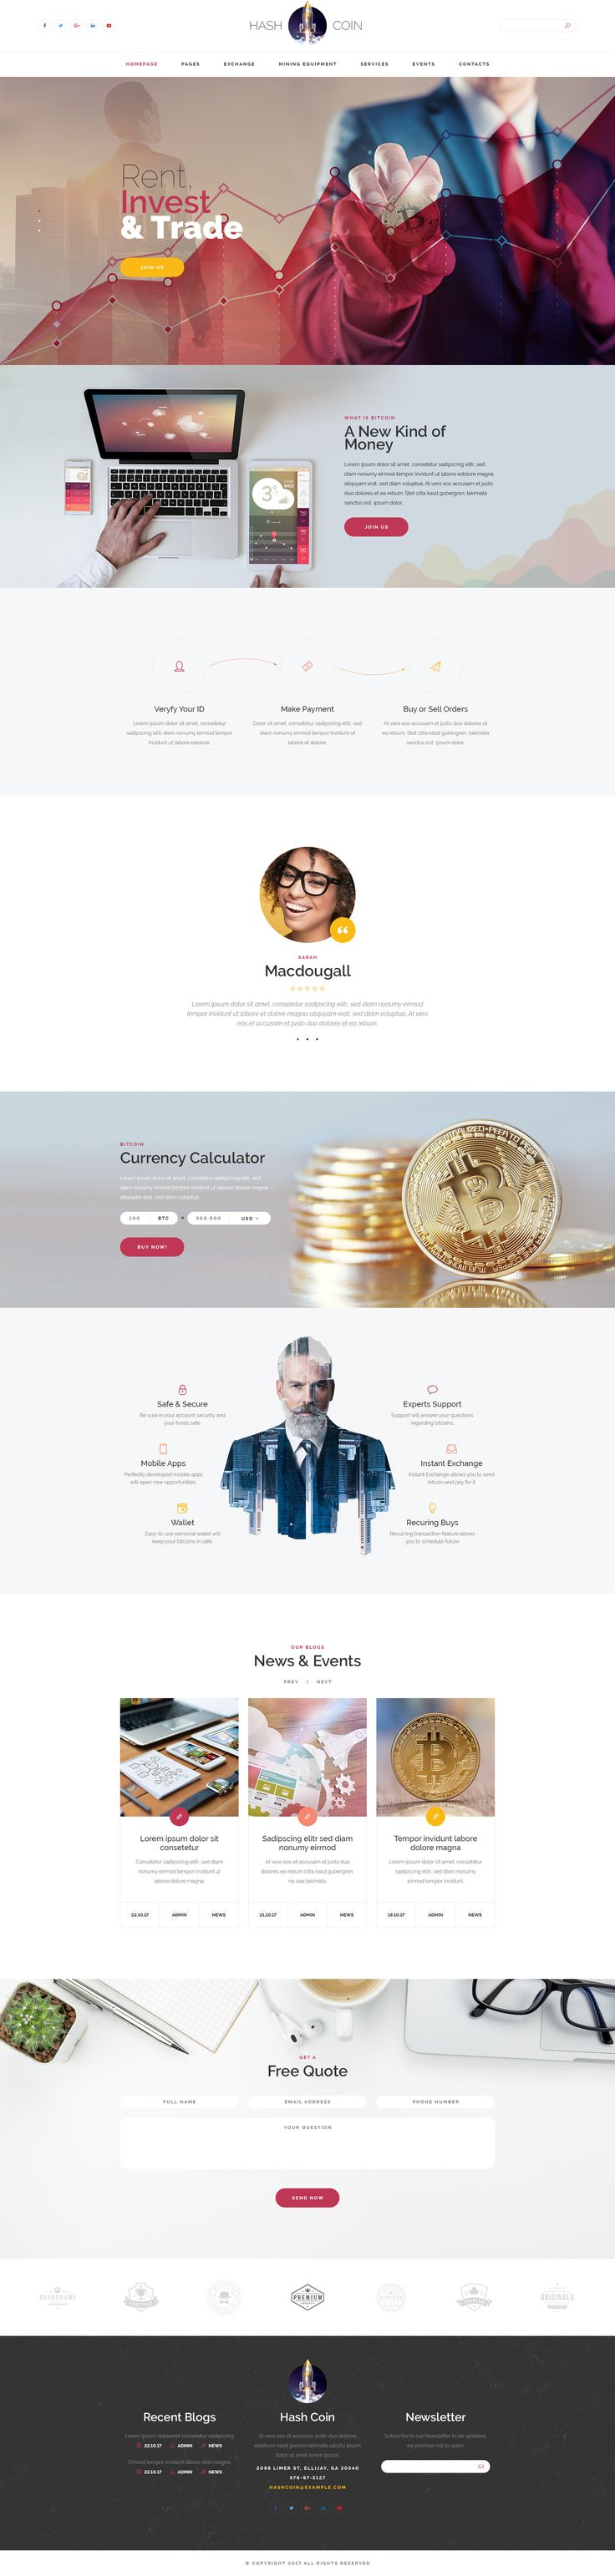 HashCoin - Bitcoin PSD template #account #accounting #bitcoin • Download ➝ https://themeforest.net/item/hashcoin-bitcoin-psd-template/20894043?ref=pxcr